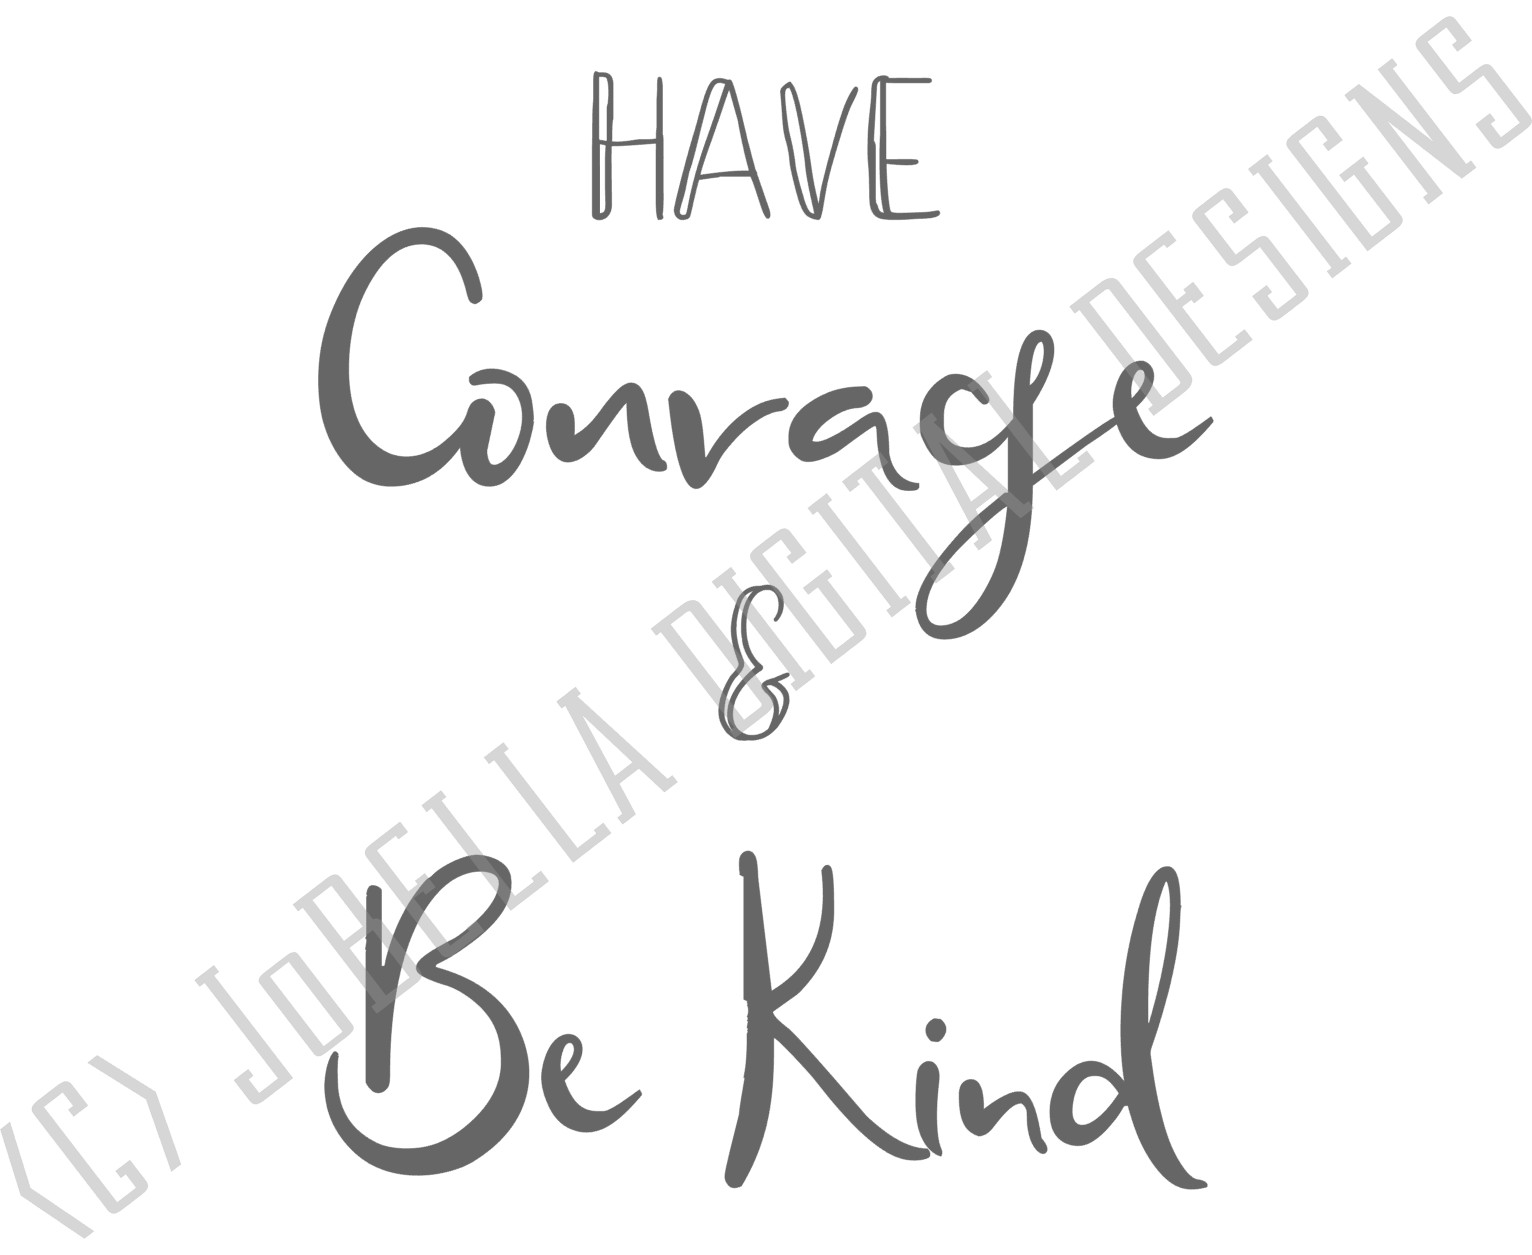 photo relating to Have Courage and Be Kind Printable referred to as Contain Braveness and Be Variety SVG, Printable and Sublimation PNG